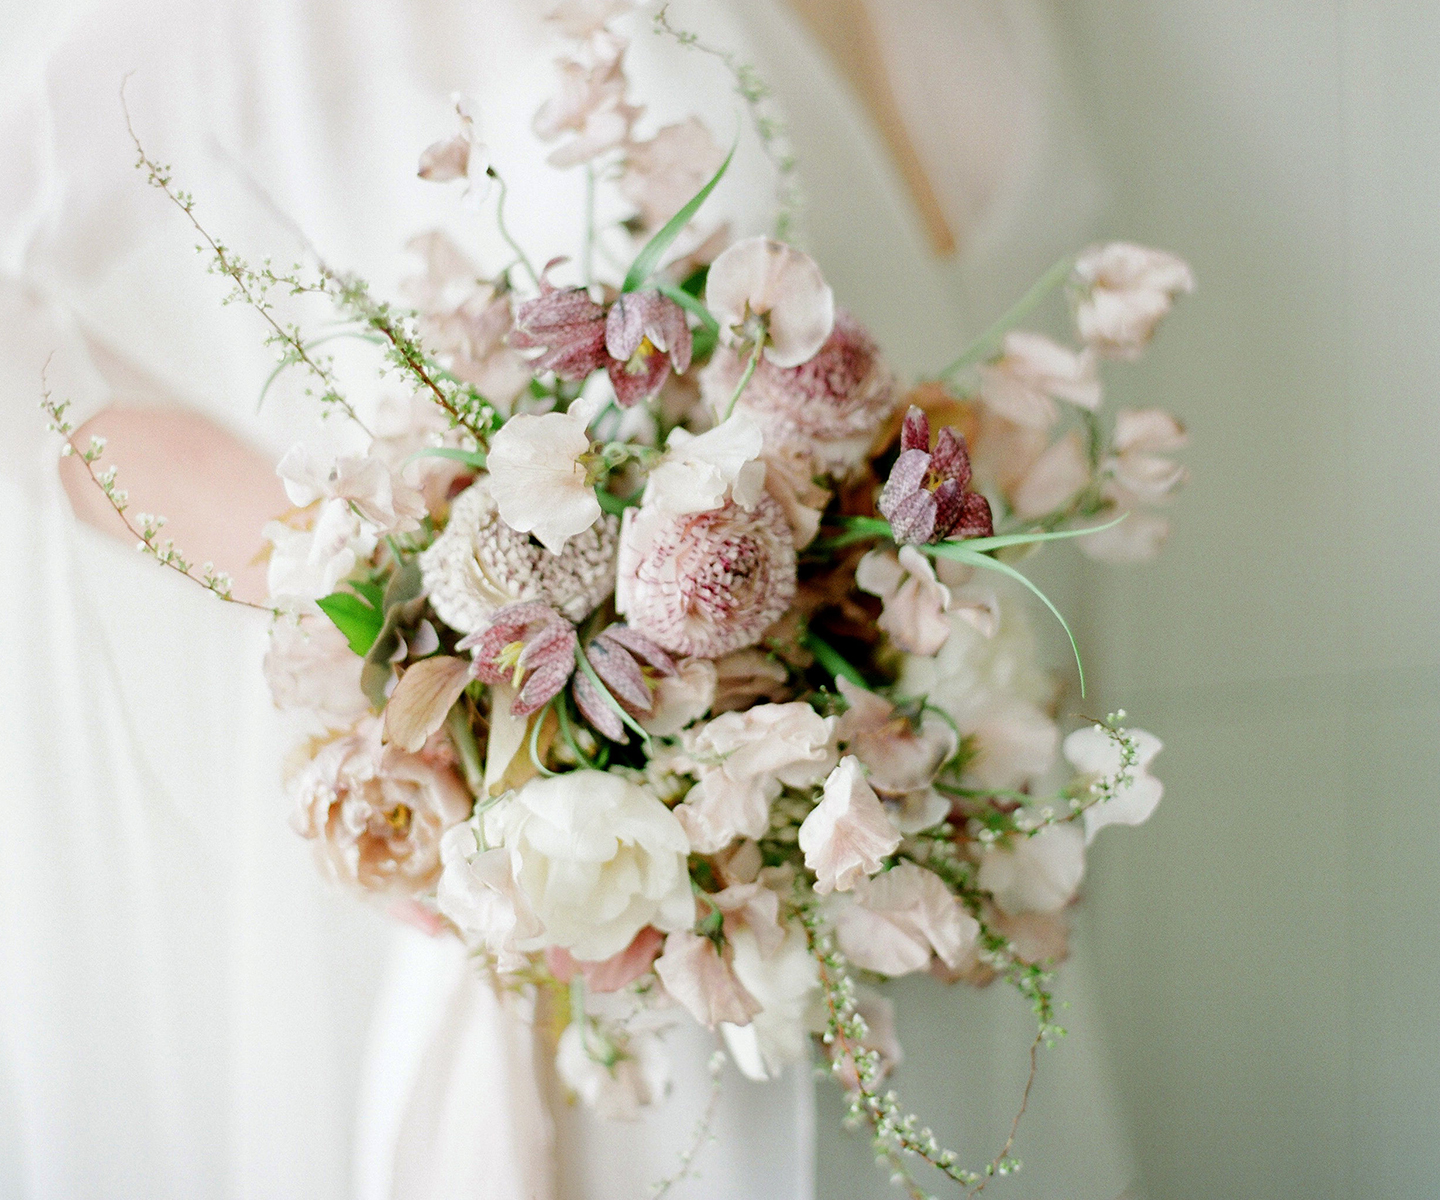 Bridal Bouquet Inspiration for Spring: 12 of the Prettiest Bouquets We've Seen This Spring in Alberta and the Rockies - Fall For Florals on The Bronte Bride